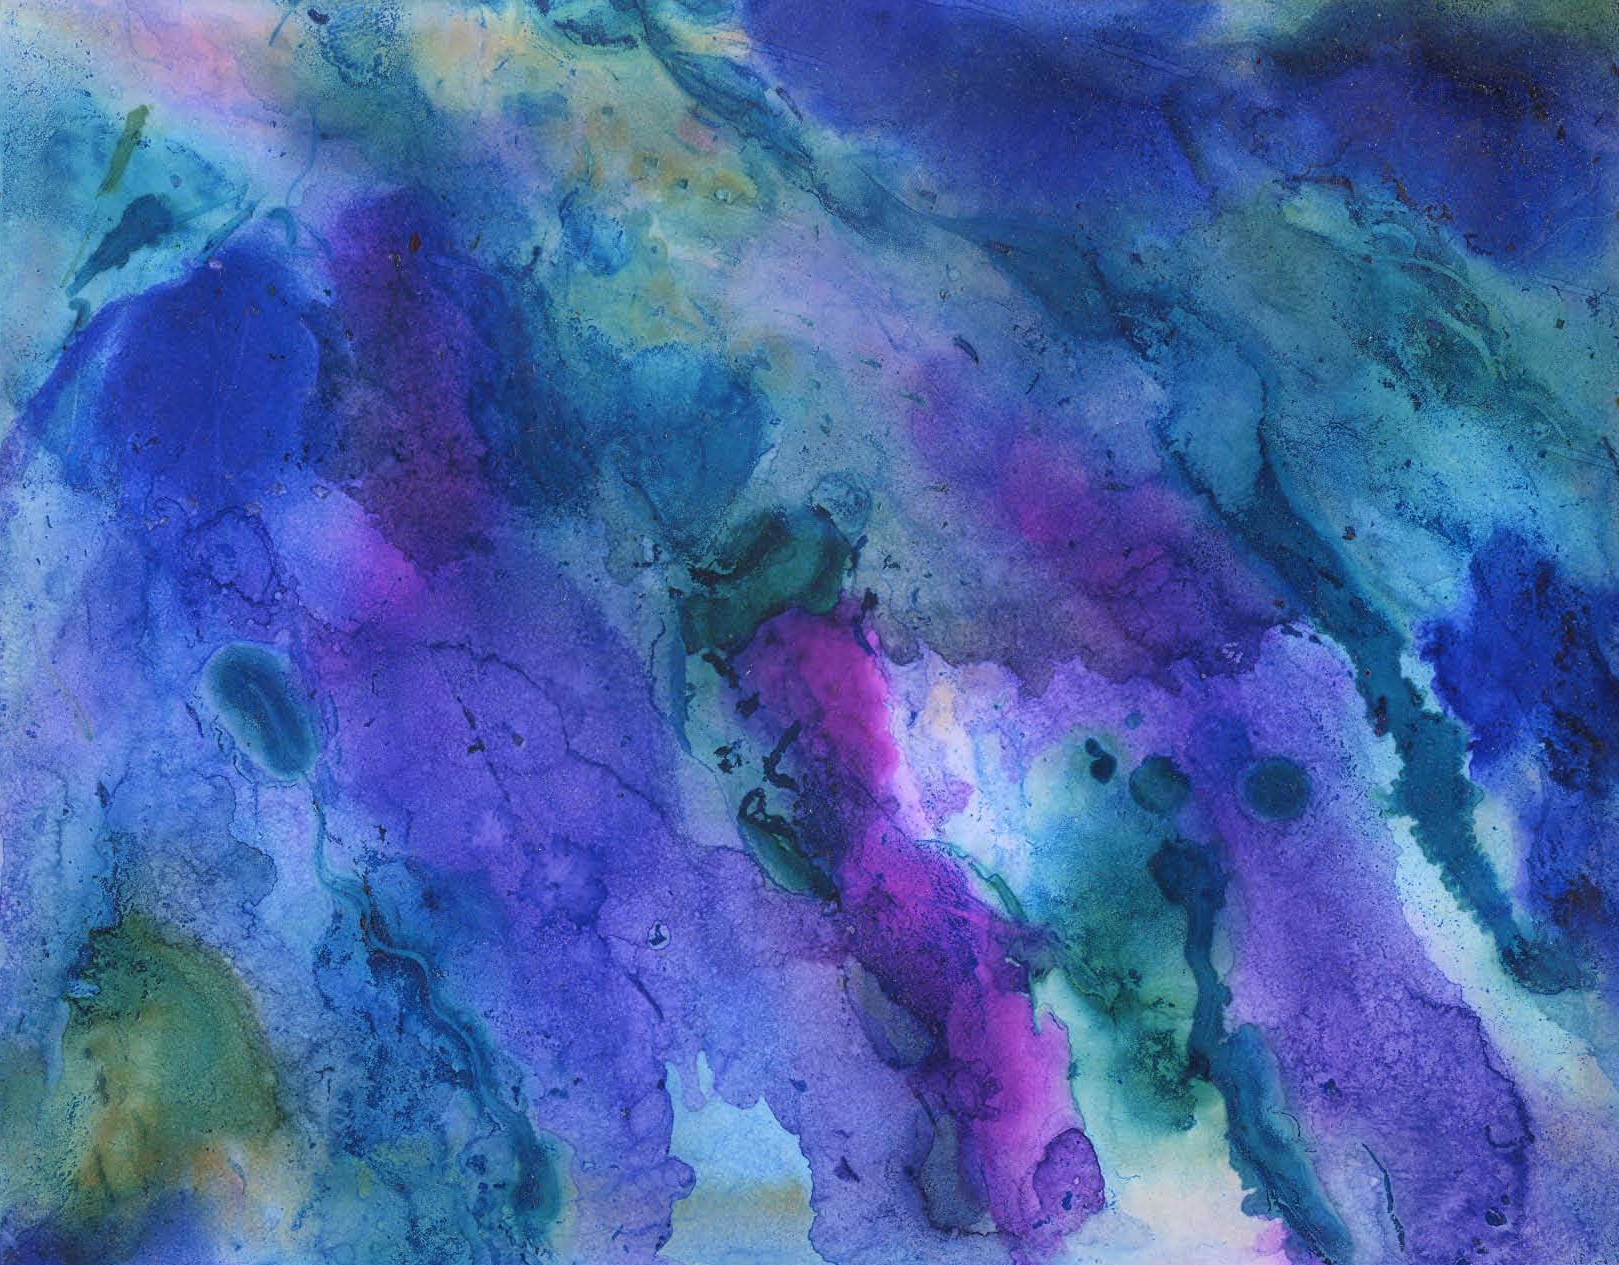 Stormy Sky - Alcohol Ink 4 X 5 - $40